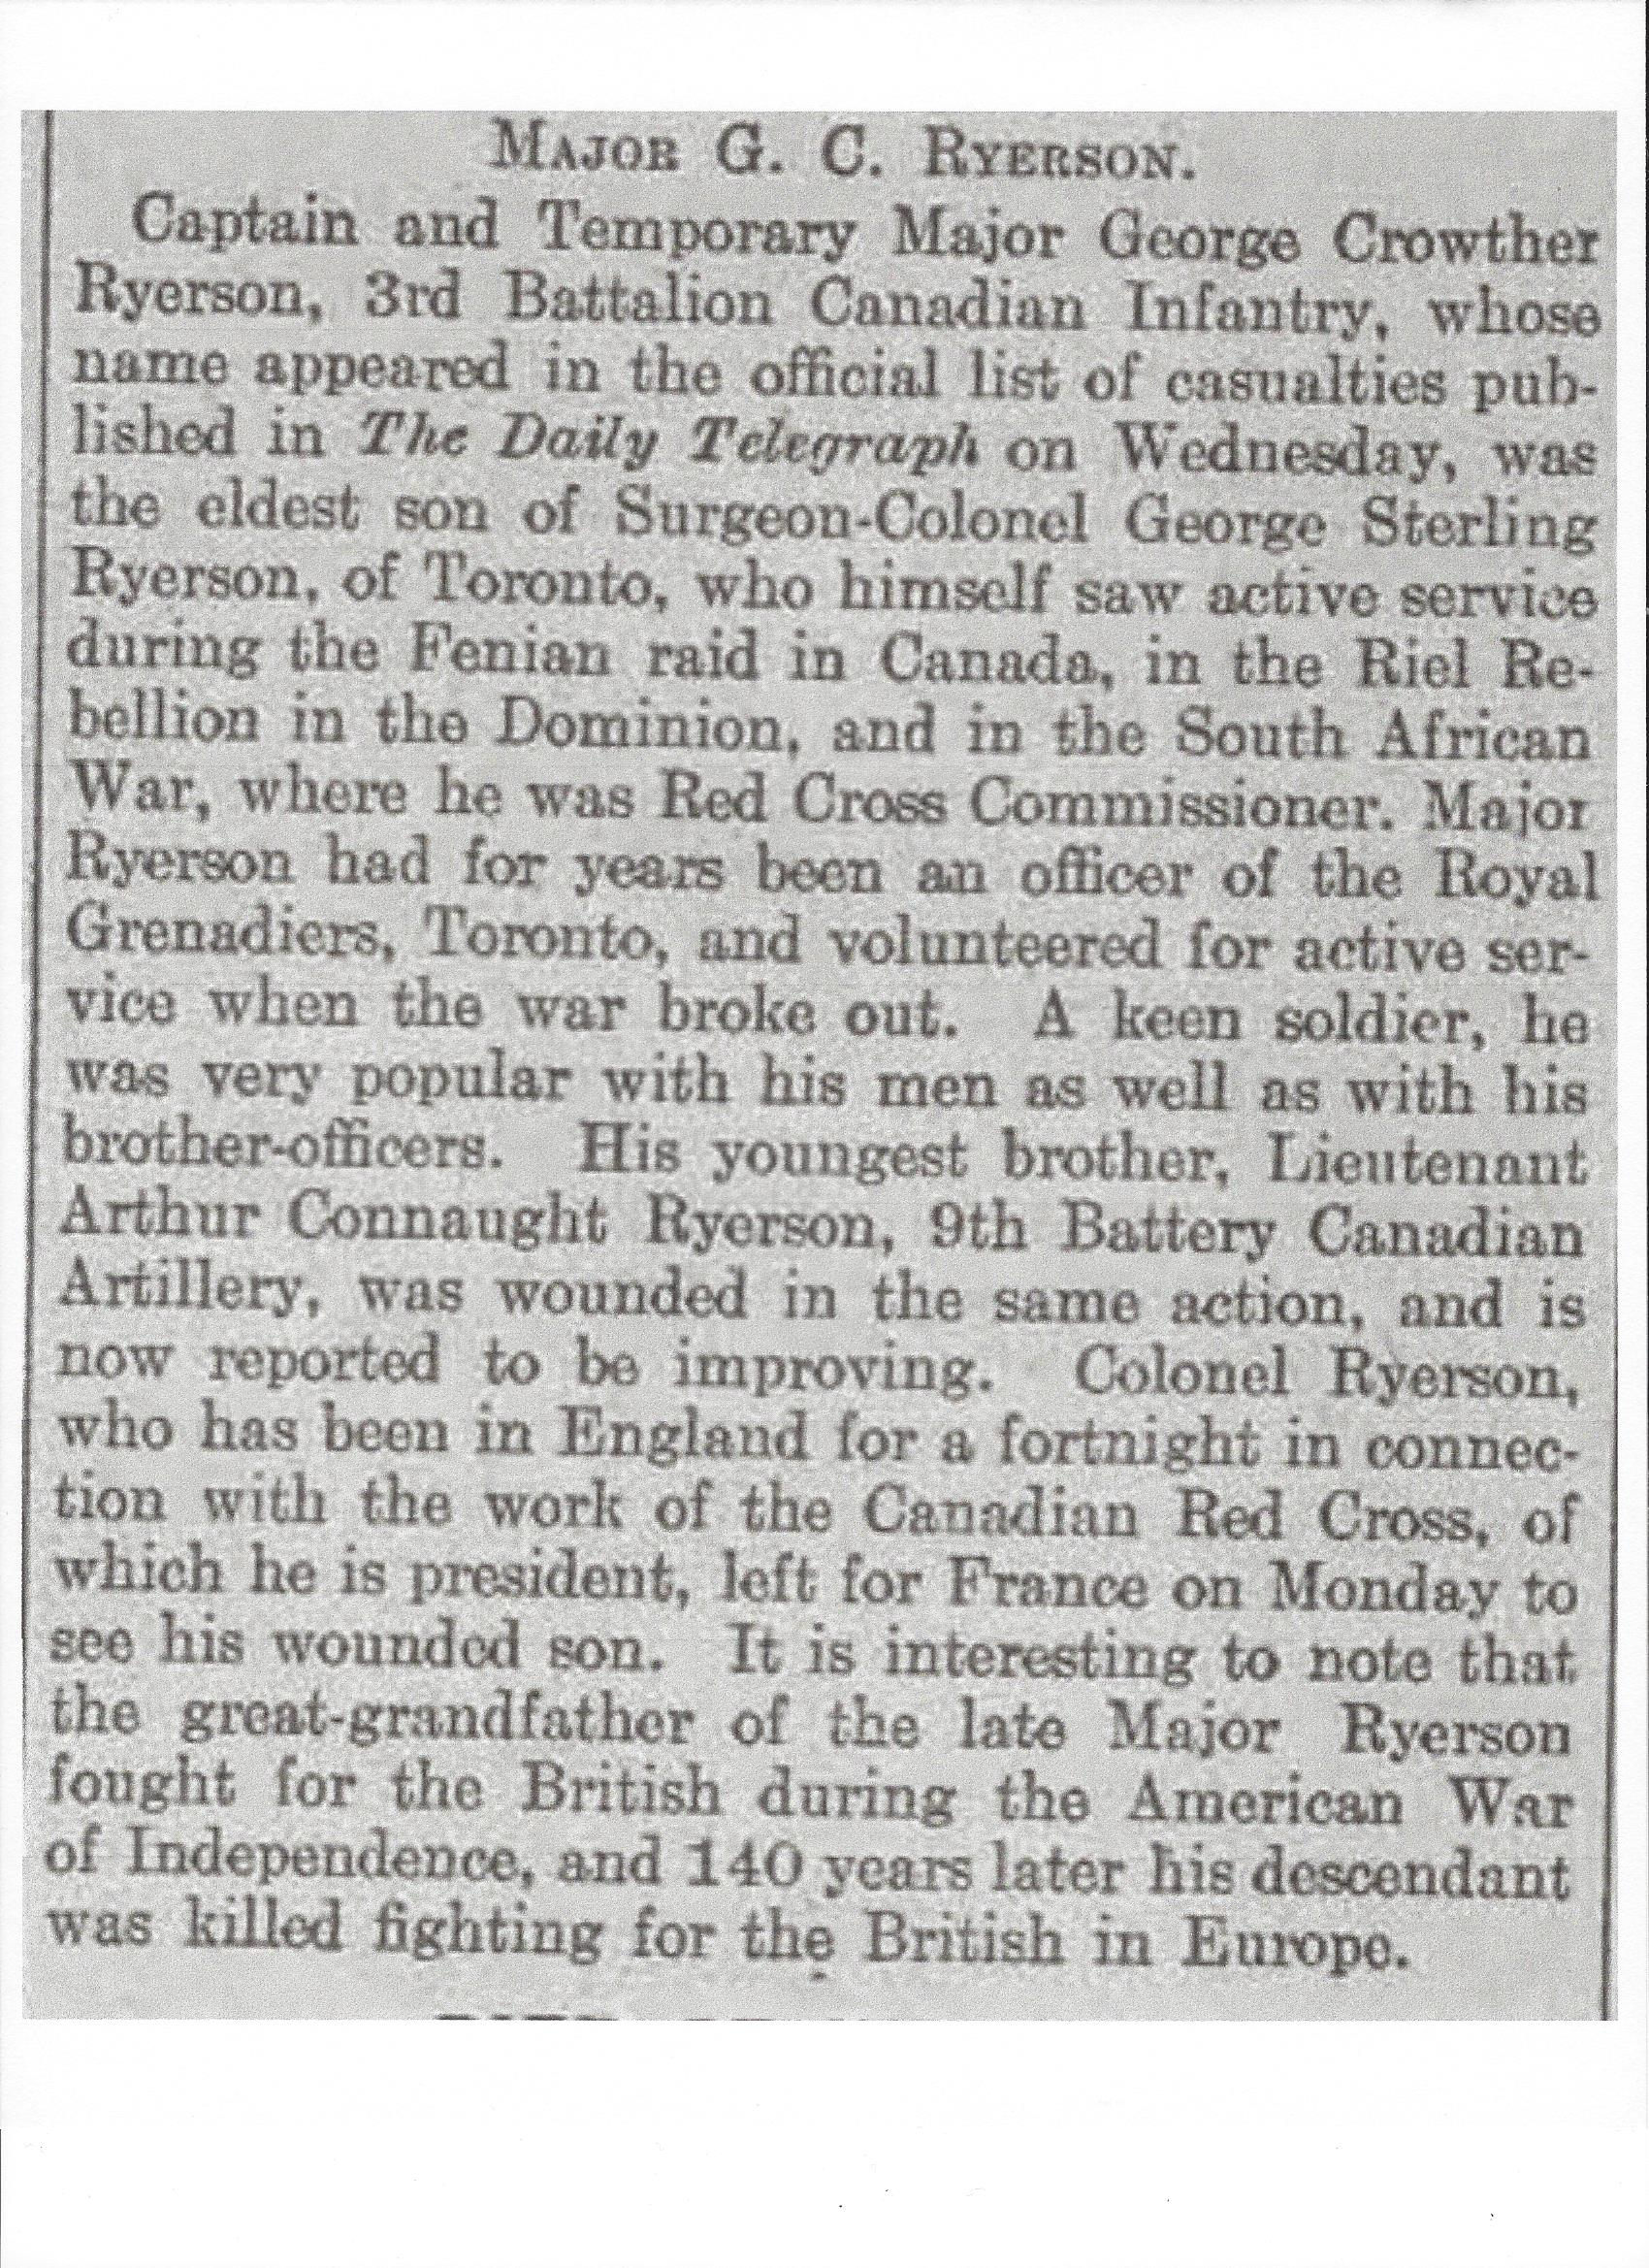 Newspaper Clipping– Newspaper clipping from Daily Telegraph of April 30, 1915. Image taken from web address of http://www.telegraph.co.uk/news/ww1-archive/11561799/Daily-Telegraph-April-30-1915.html